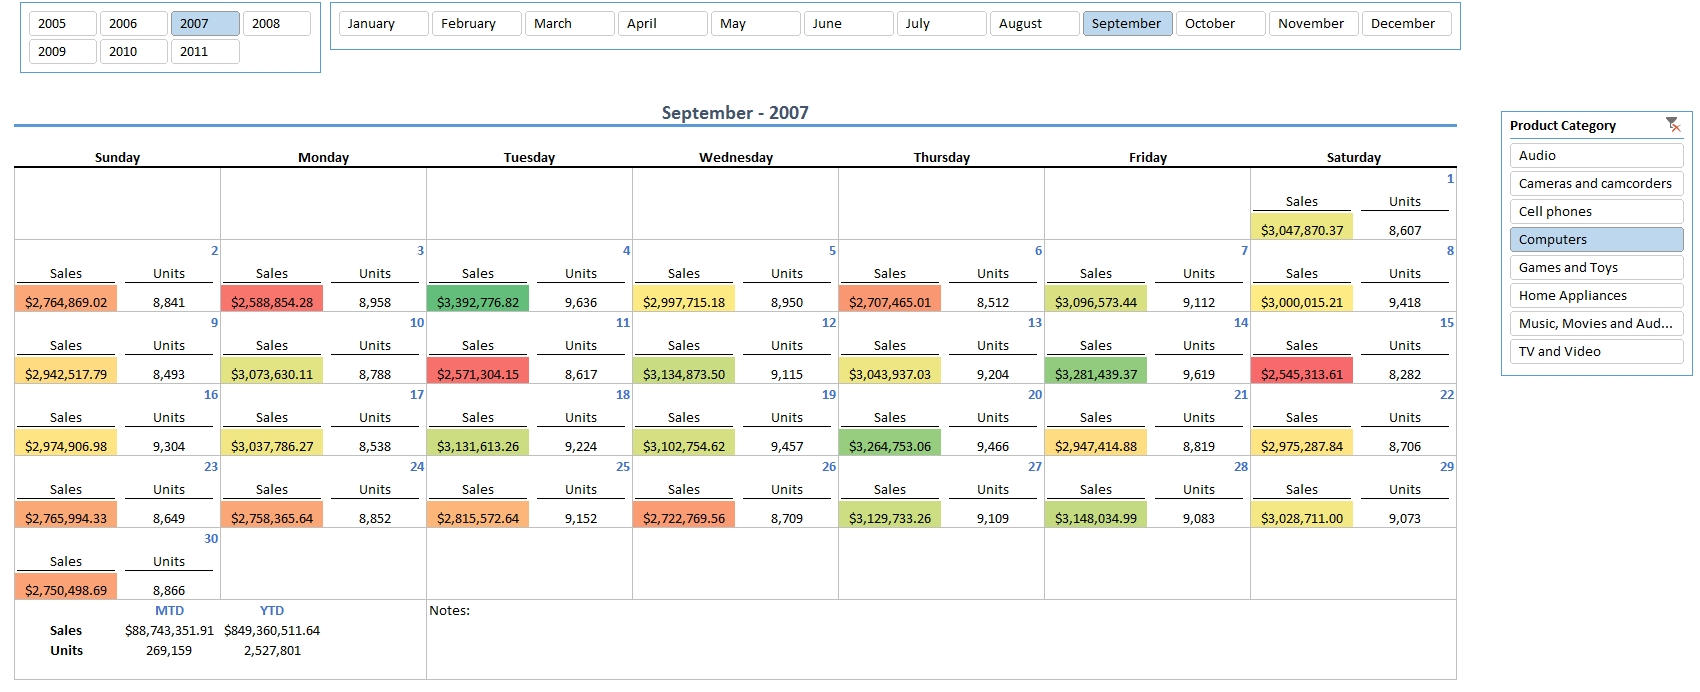 Calendar Reporting With Excel And Power Pivot | Analysis Services